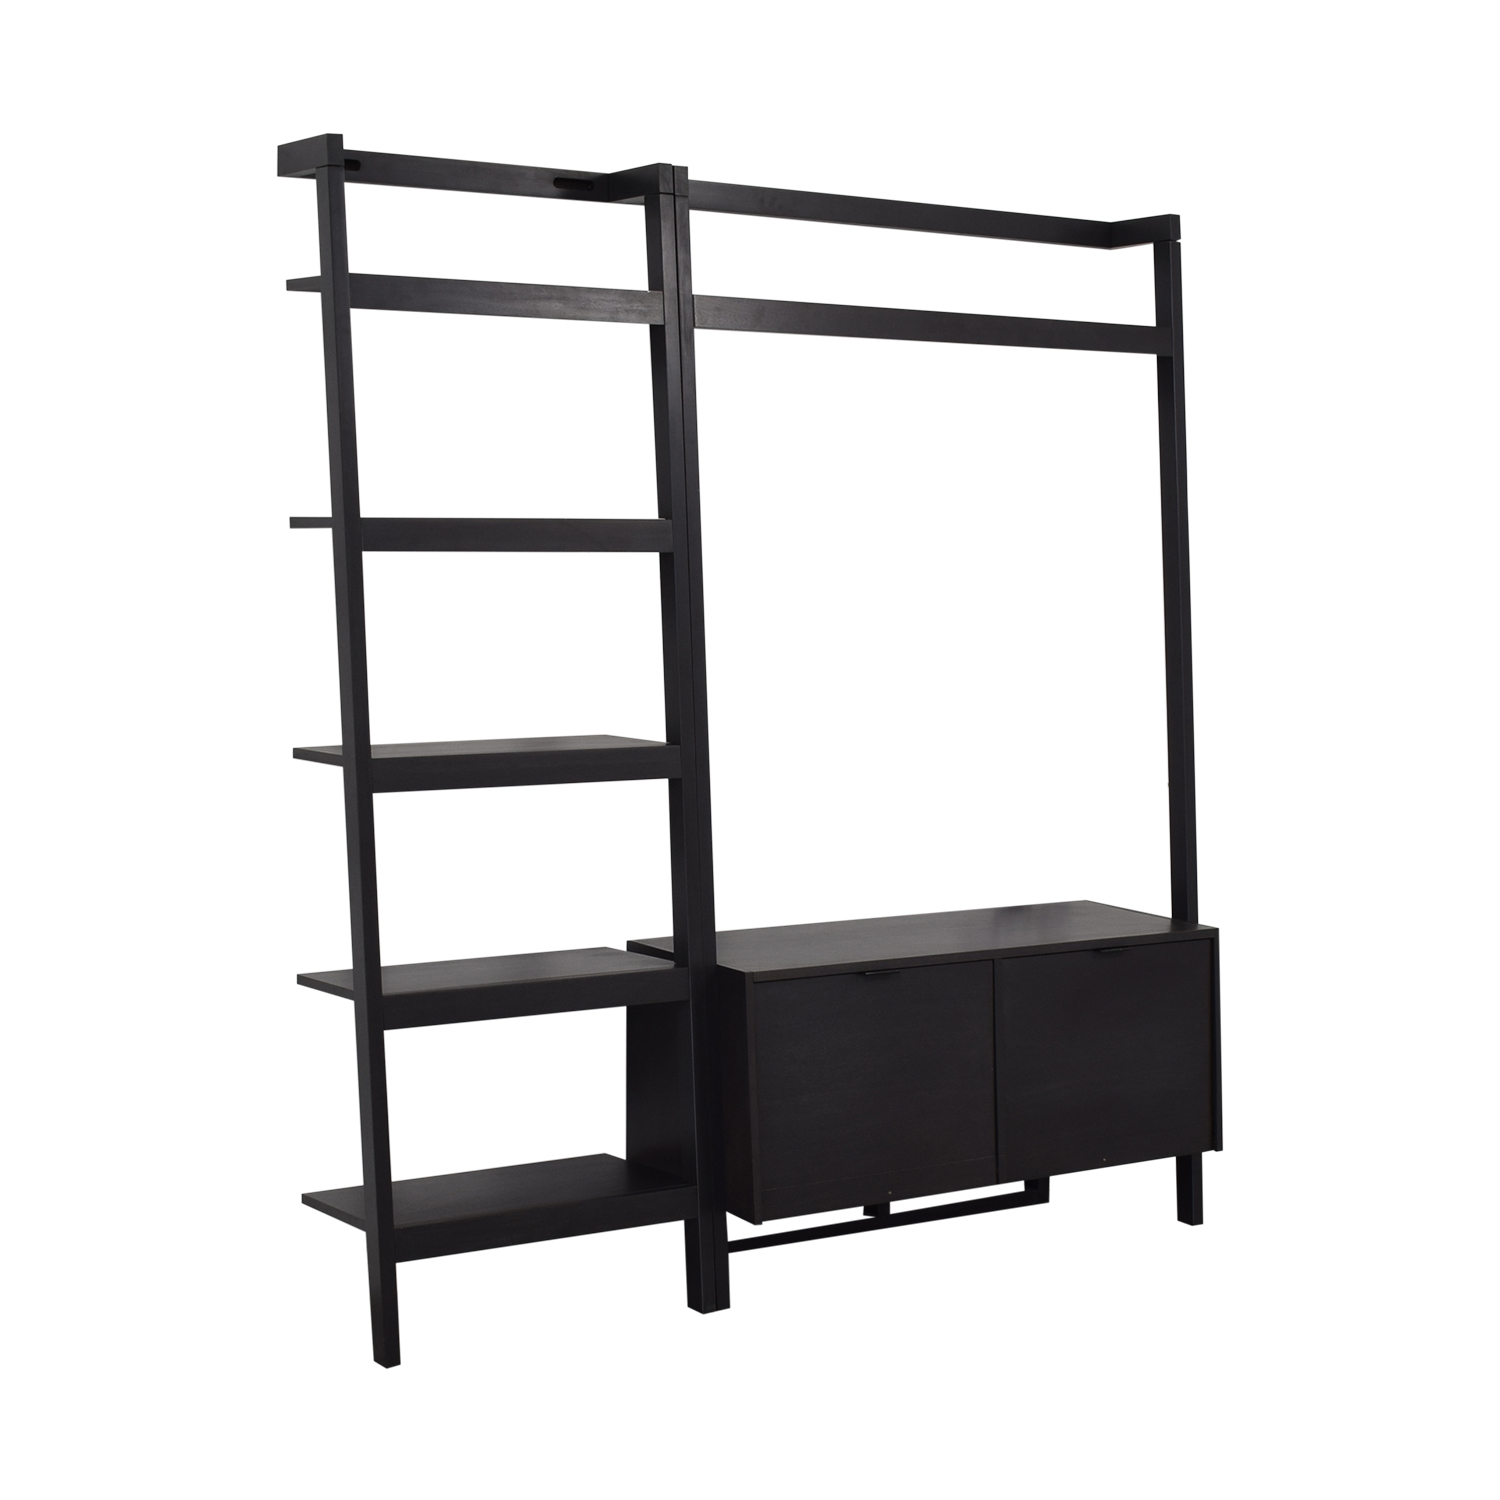 Crate & Barrel Sawyer Media Unit and Bookshelf Crate & Barrel